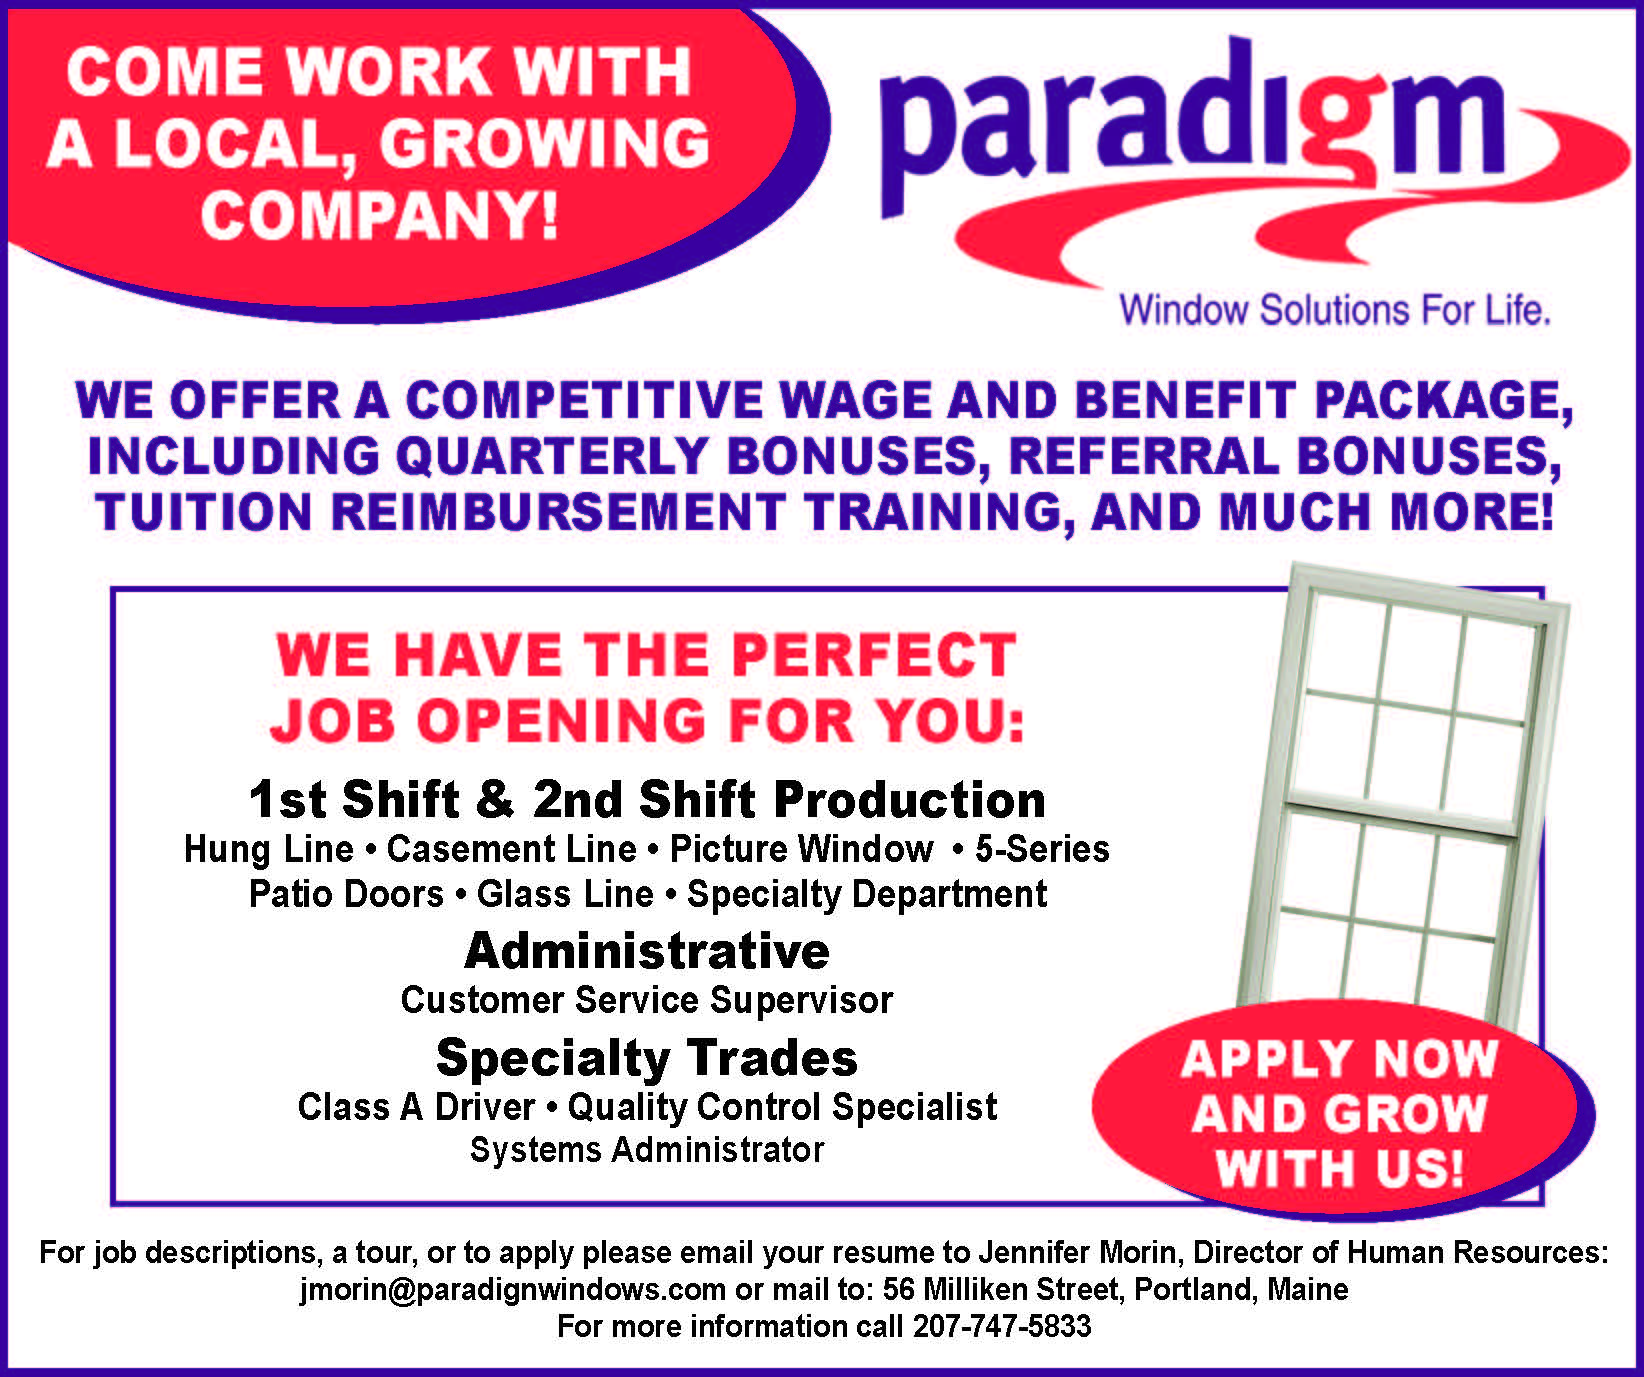 jmorin@paradigmwindows.com